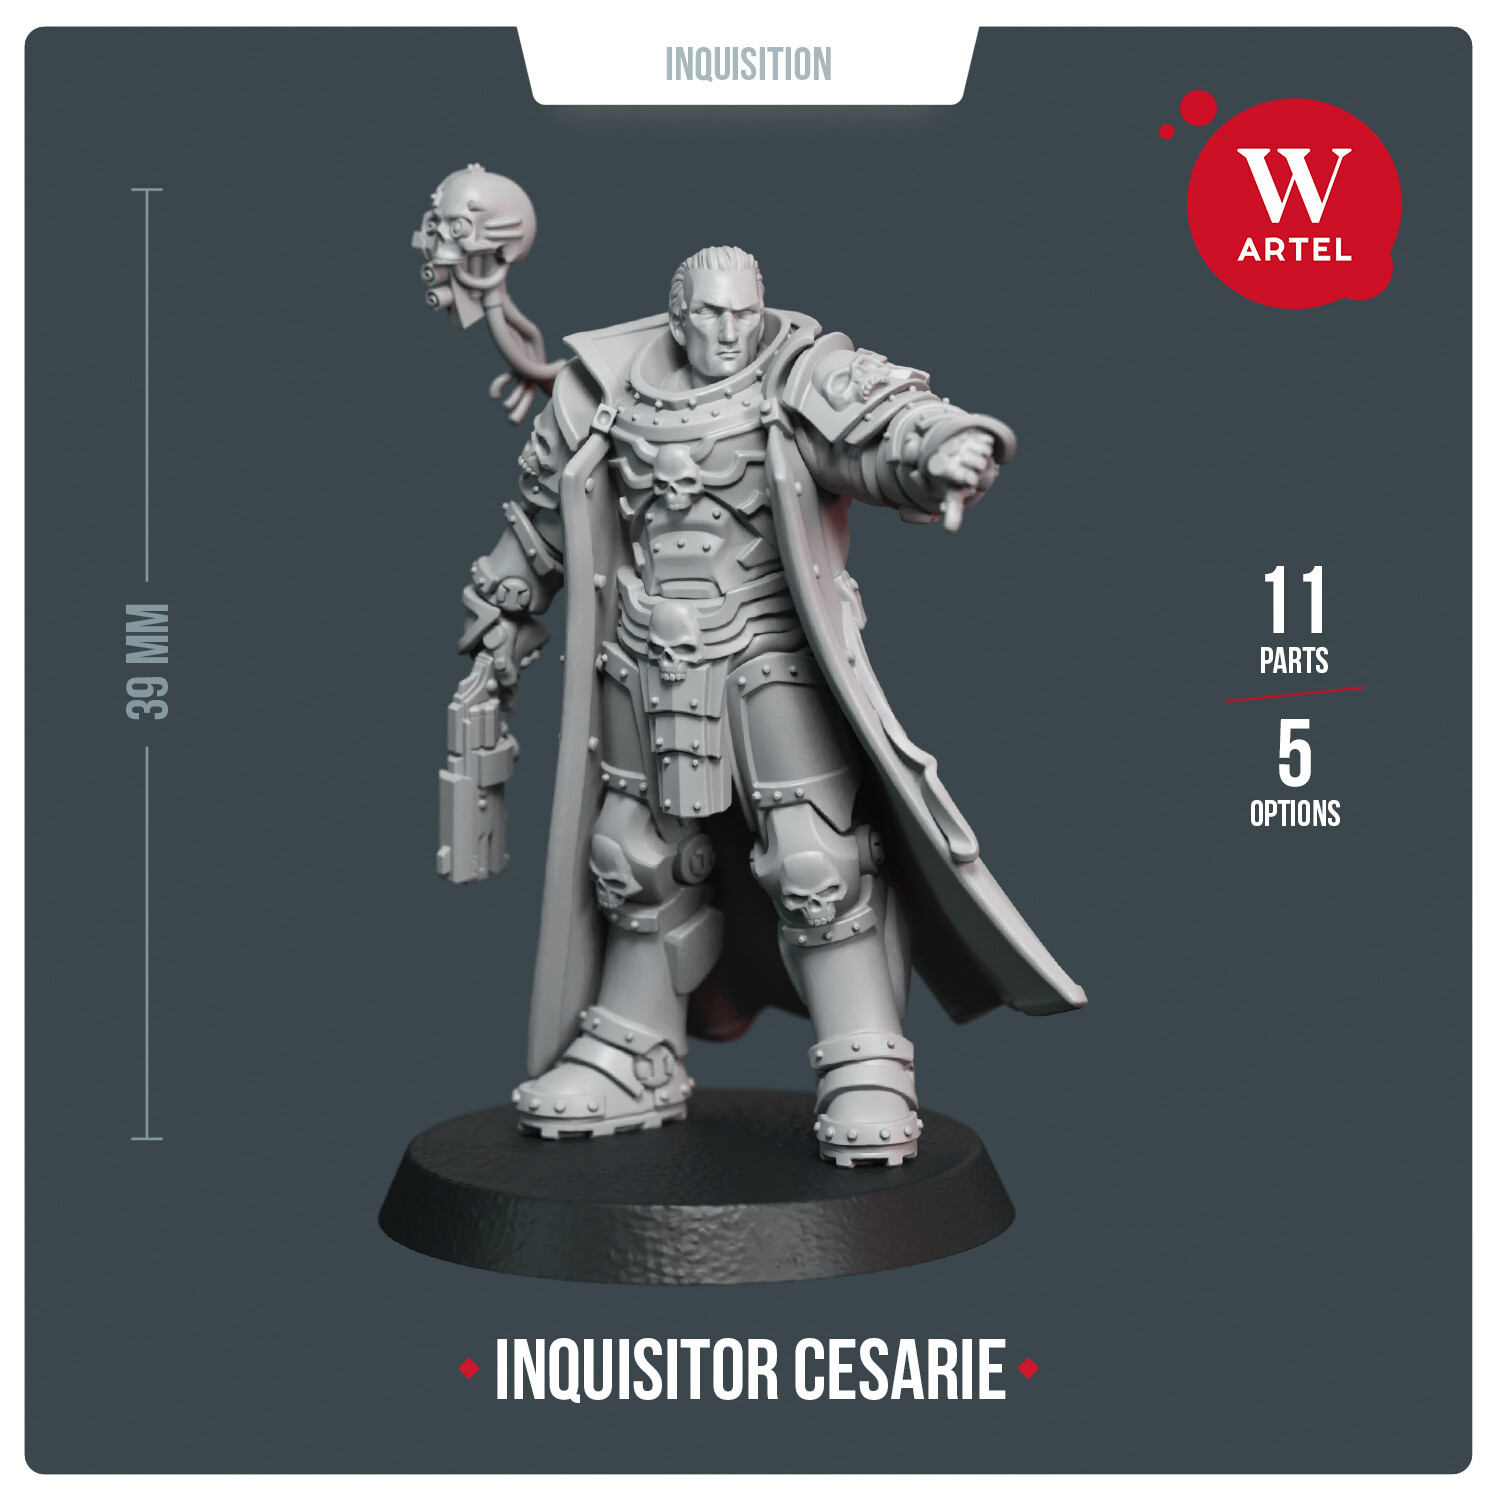 Inquisitor Cesarie